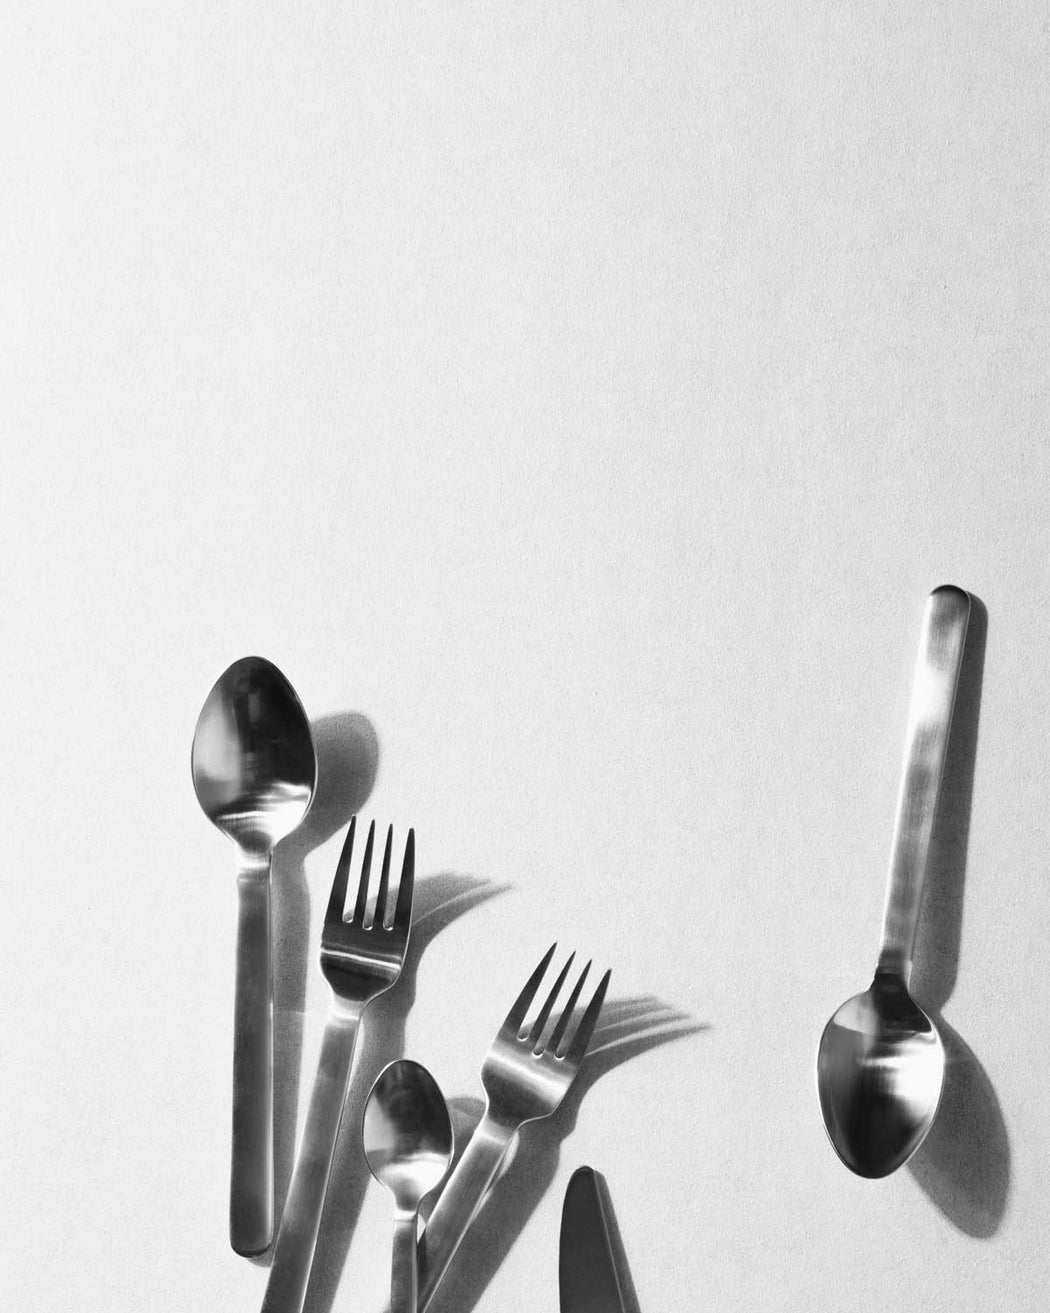 Modern Minimalist Menu New Norm Cutlery, Brushed Steel